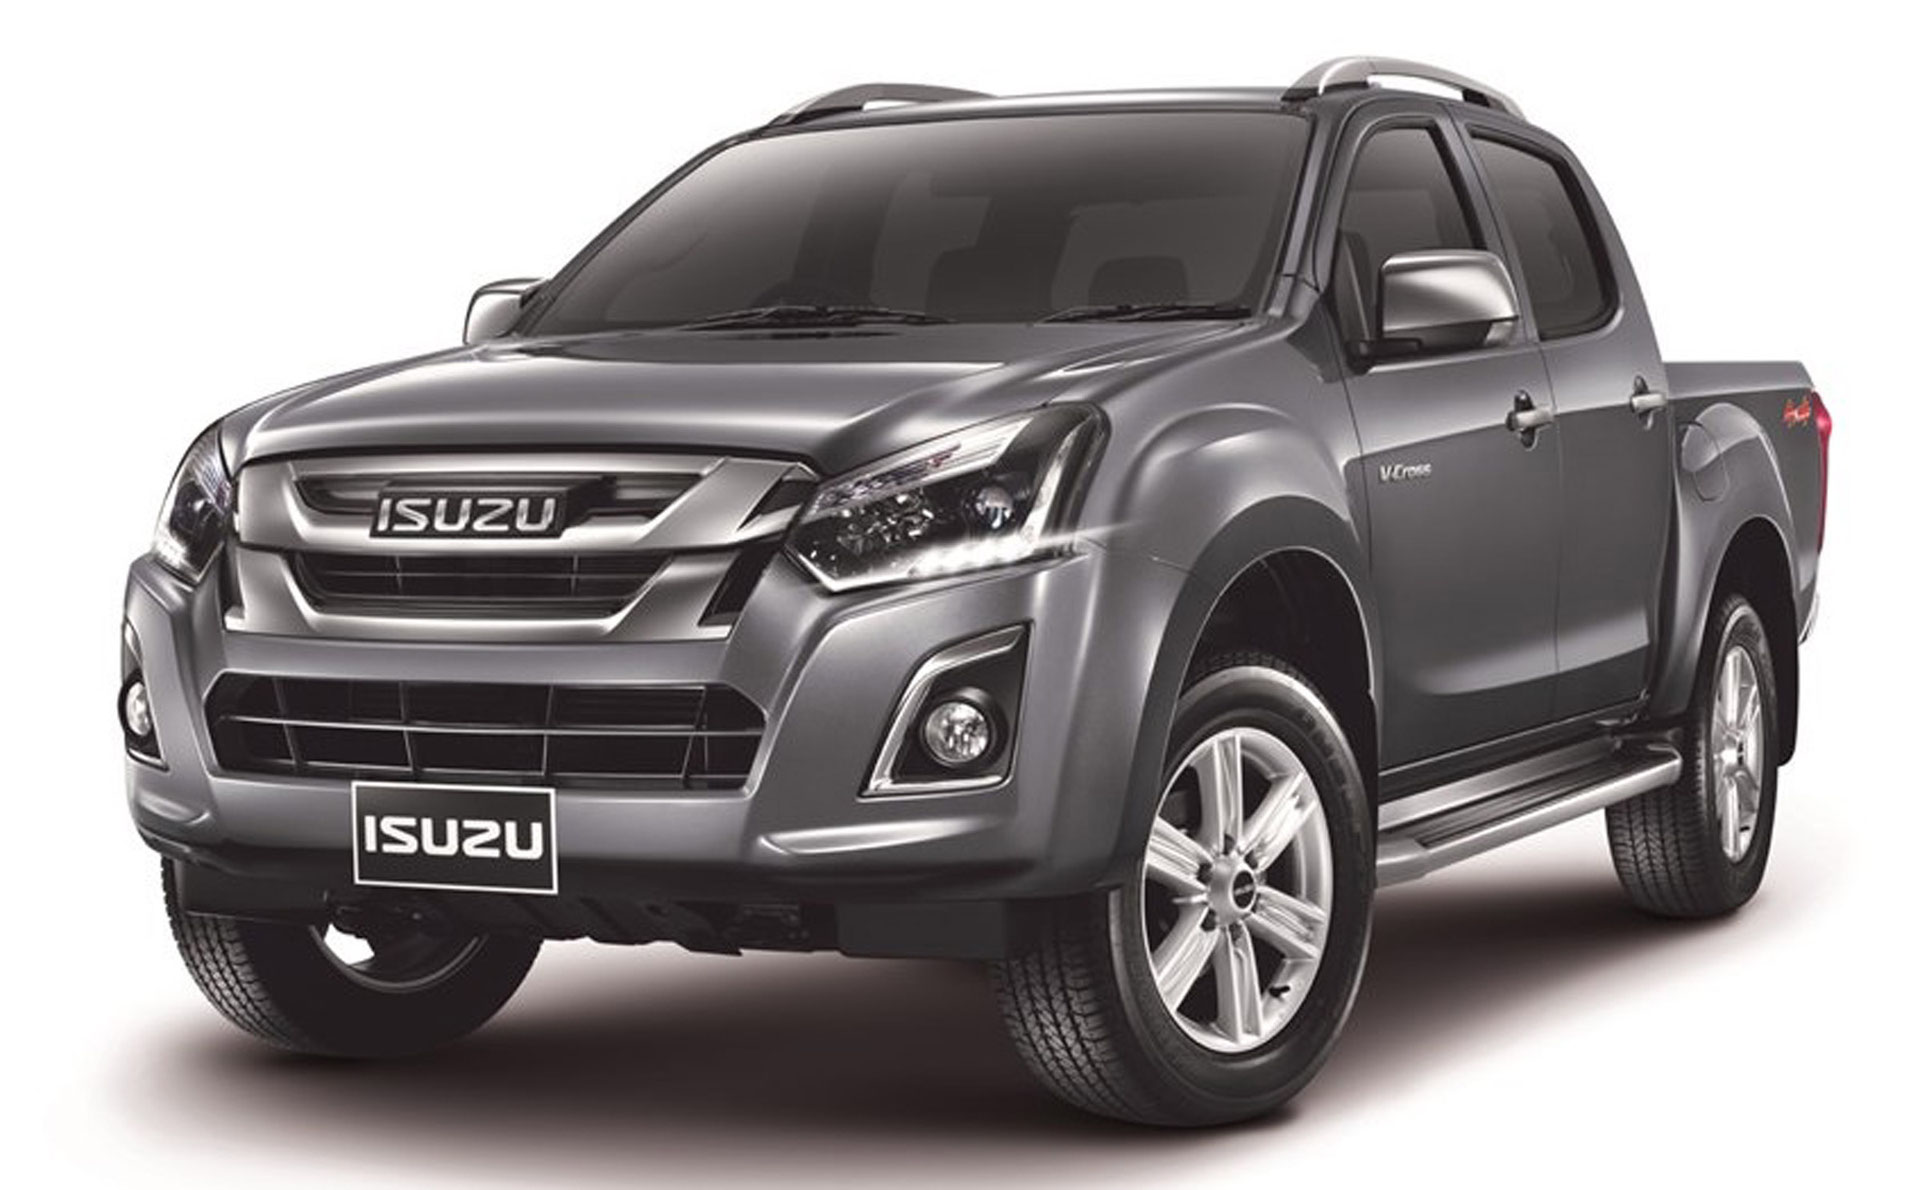 hight resolution of 19 isuzu pdf manuals download for free ar pdf manual wiring diagram fault codes